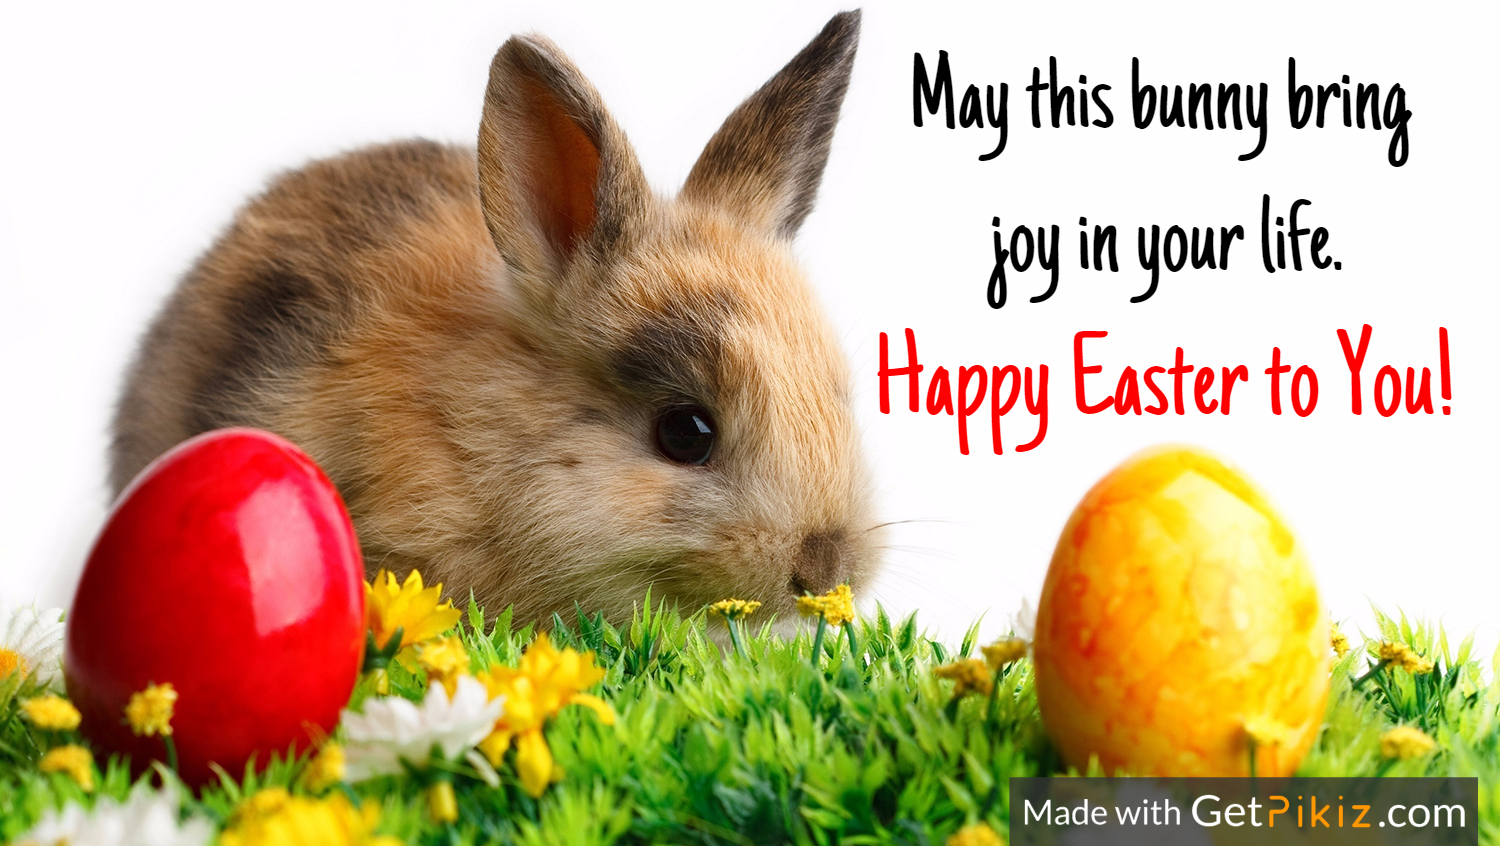 May this bunny bring  joy in your life. Happy Easter to You!